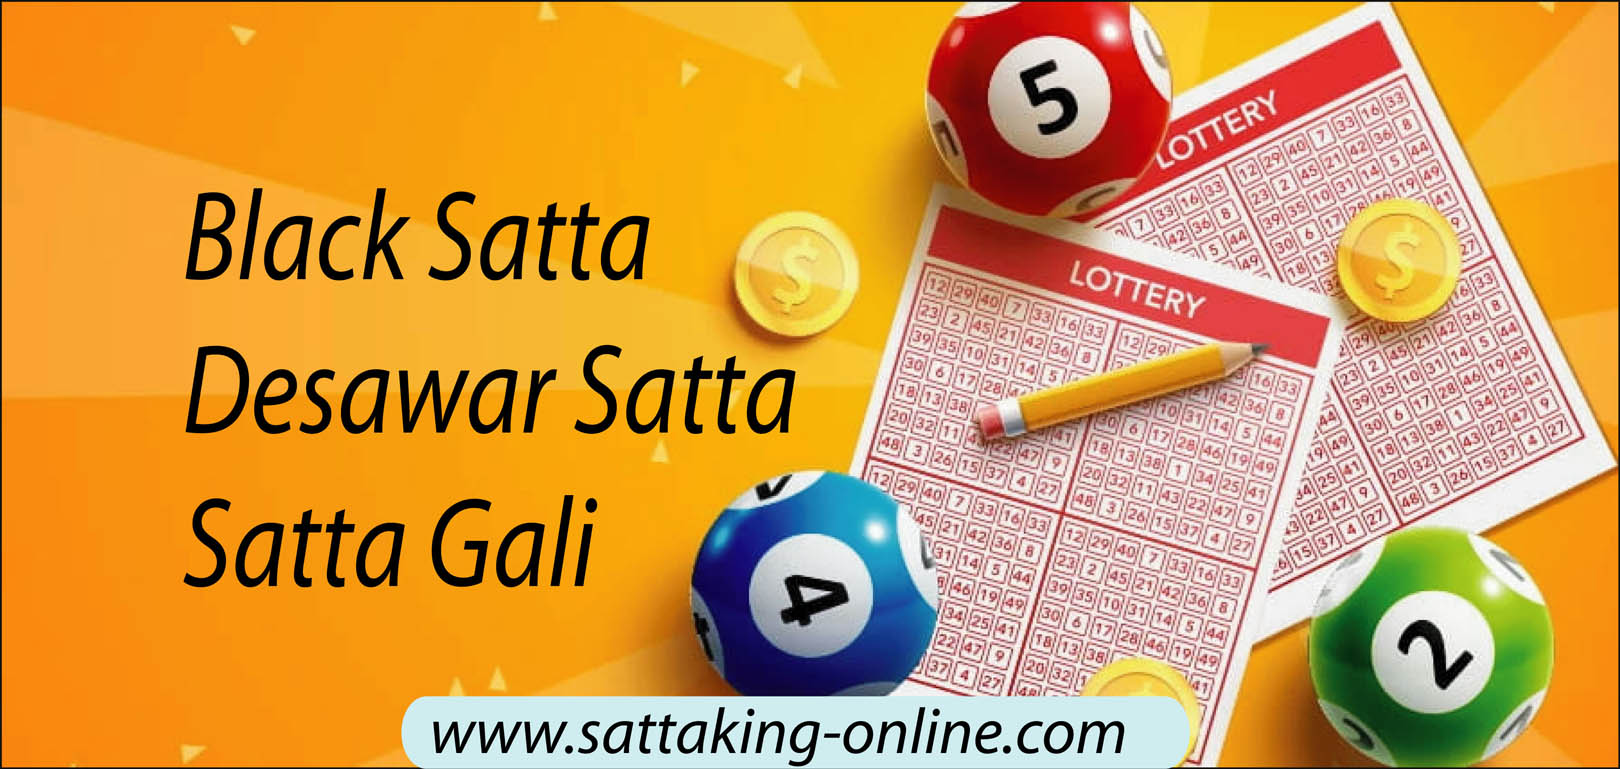 Desawar Satta Lotto Games in India